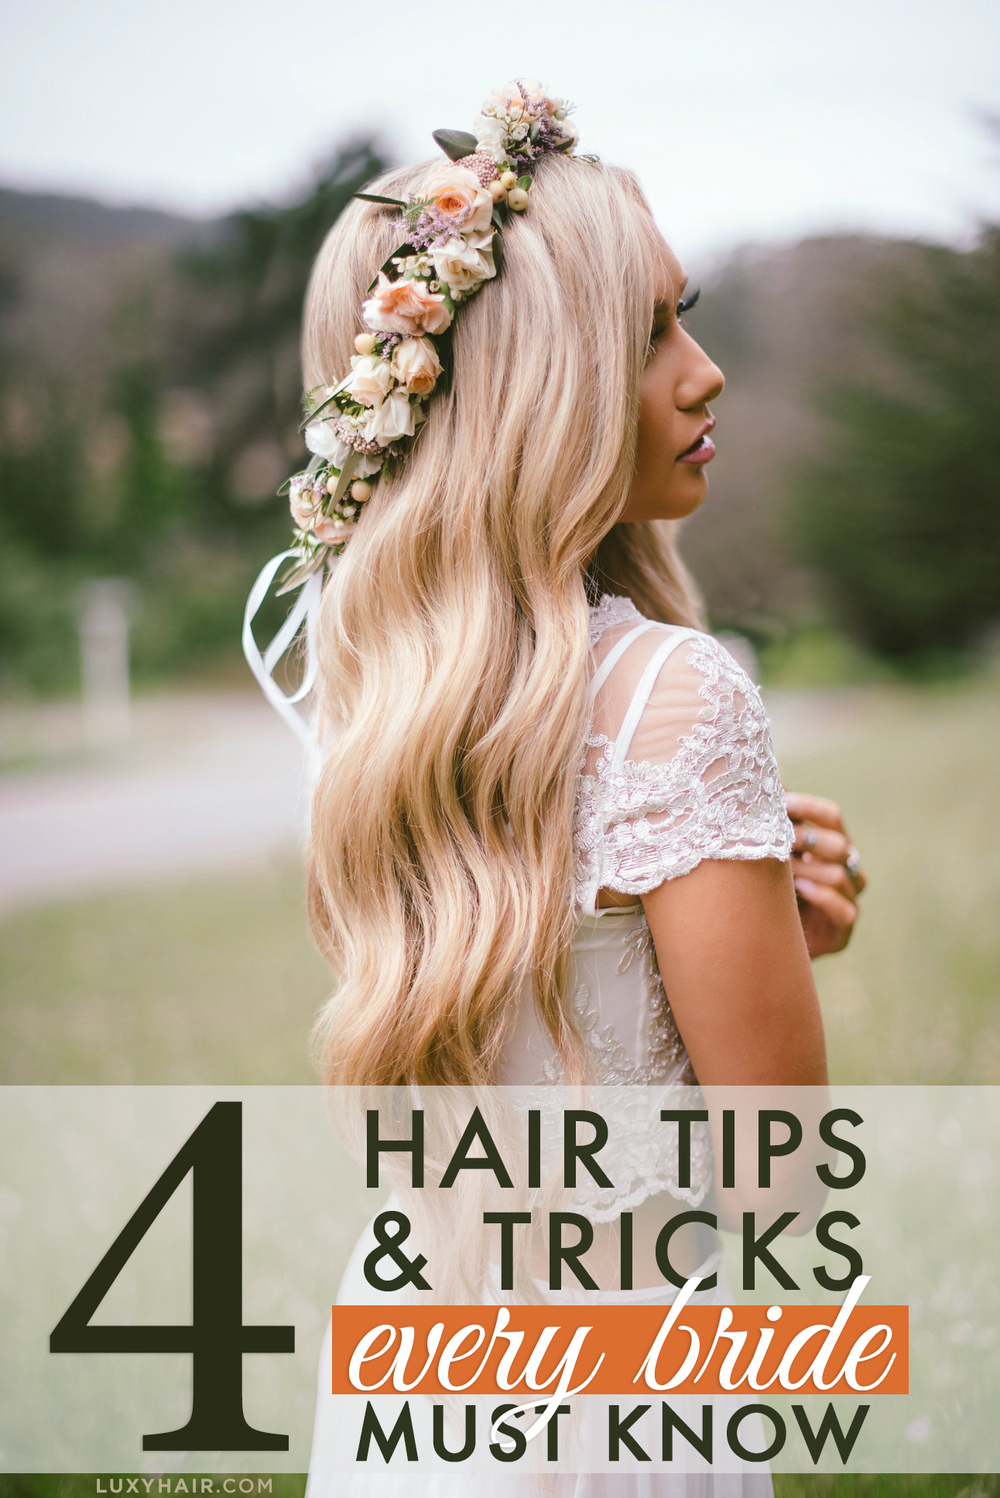 4 wedding hair tips and tricks every bride must know luxy hair 4 wedding hair tips and tricks every bride must know junglespirit